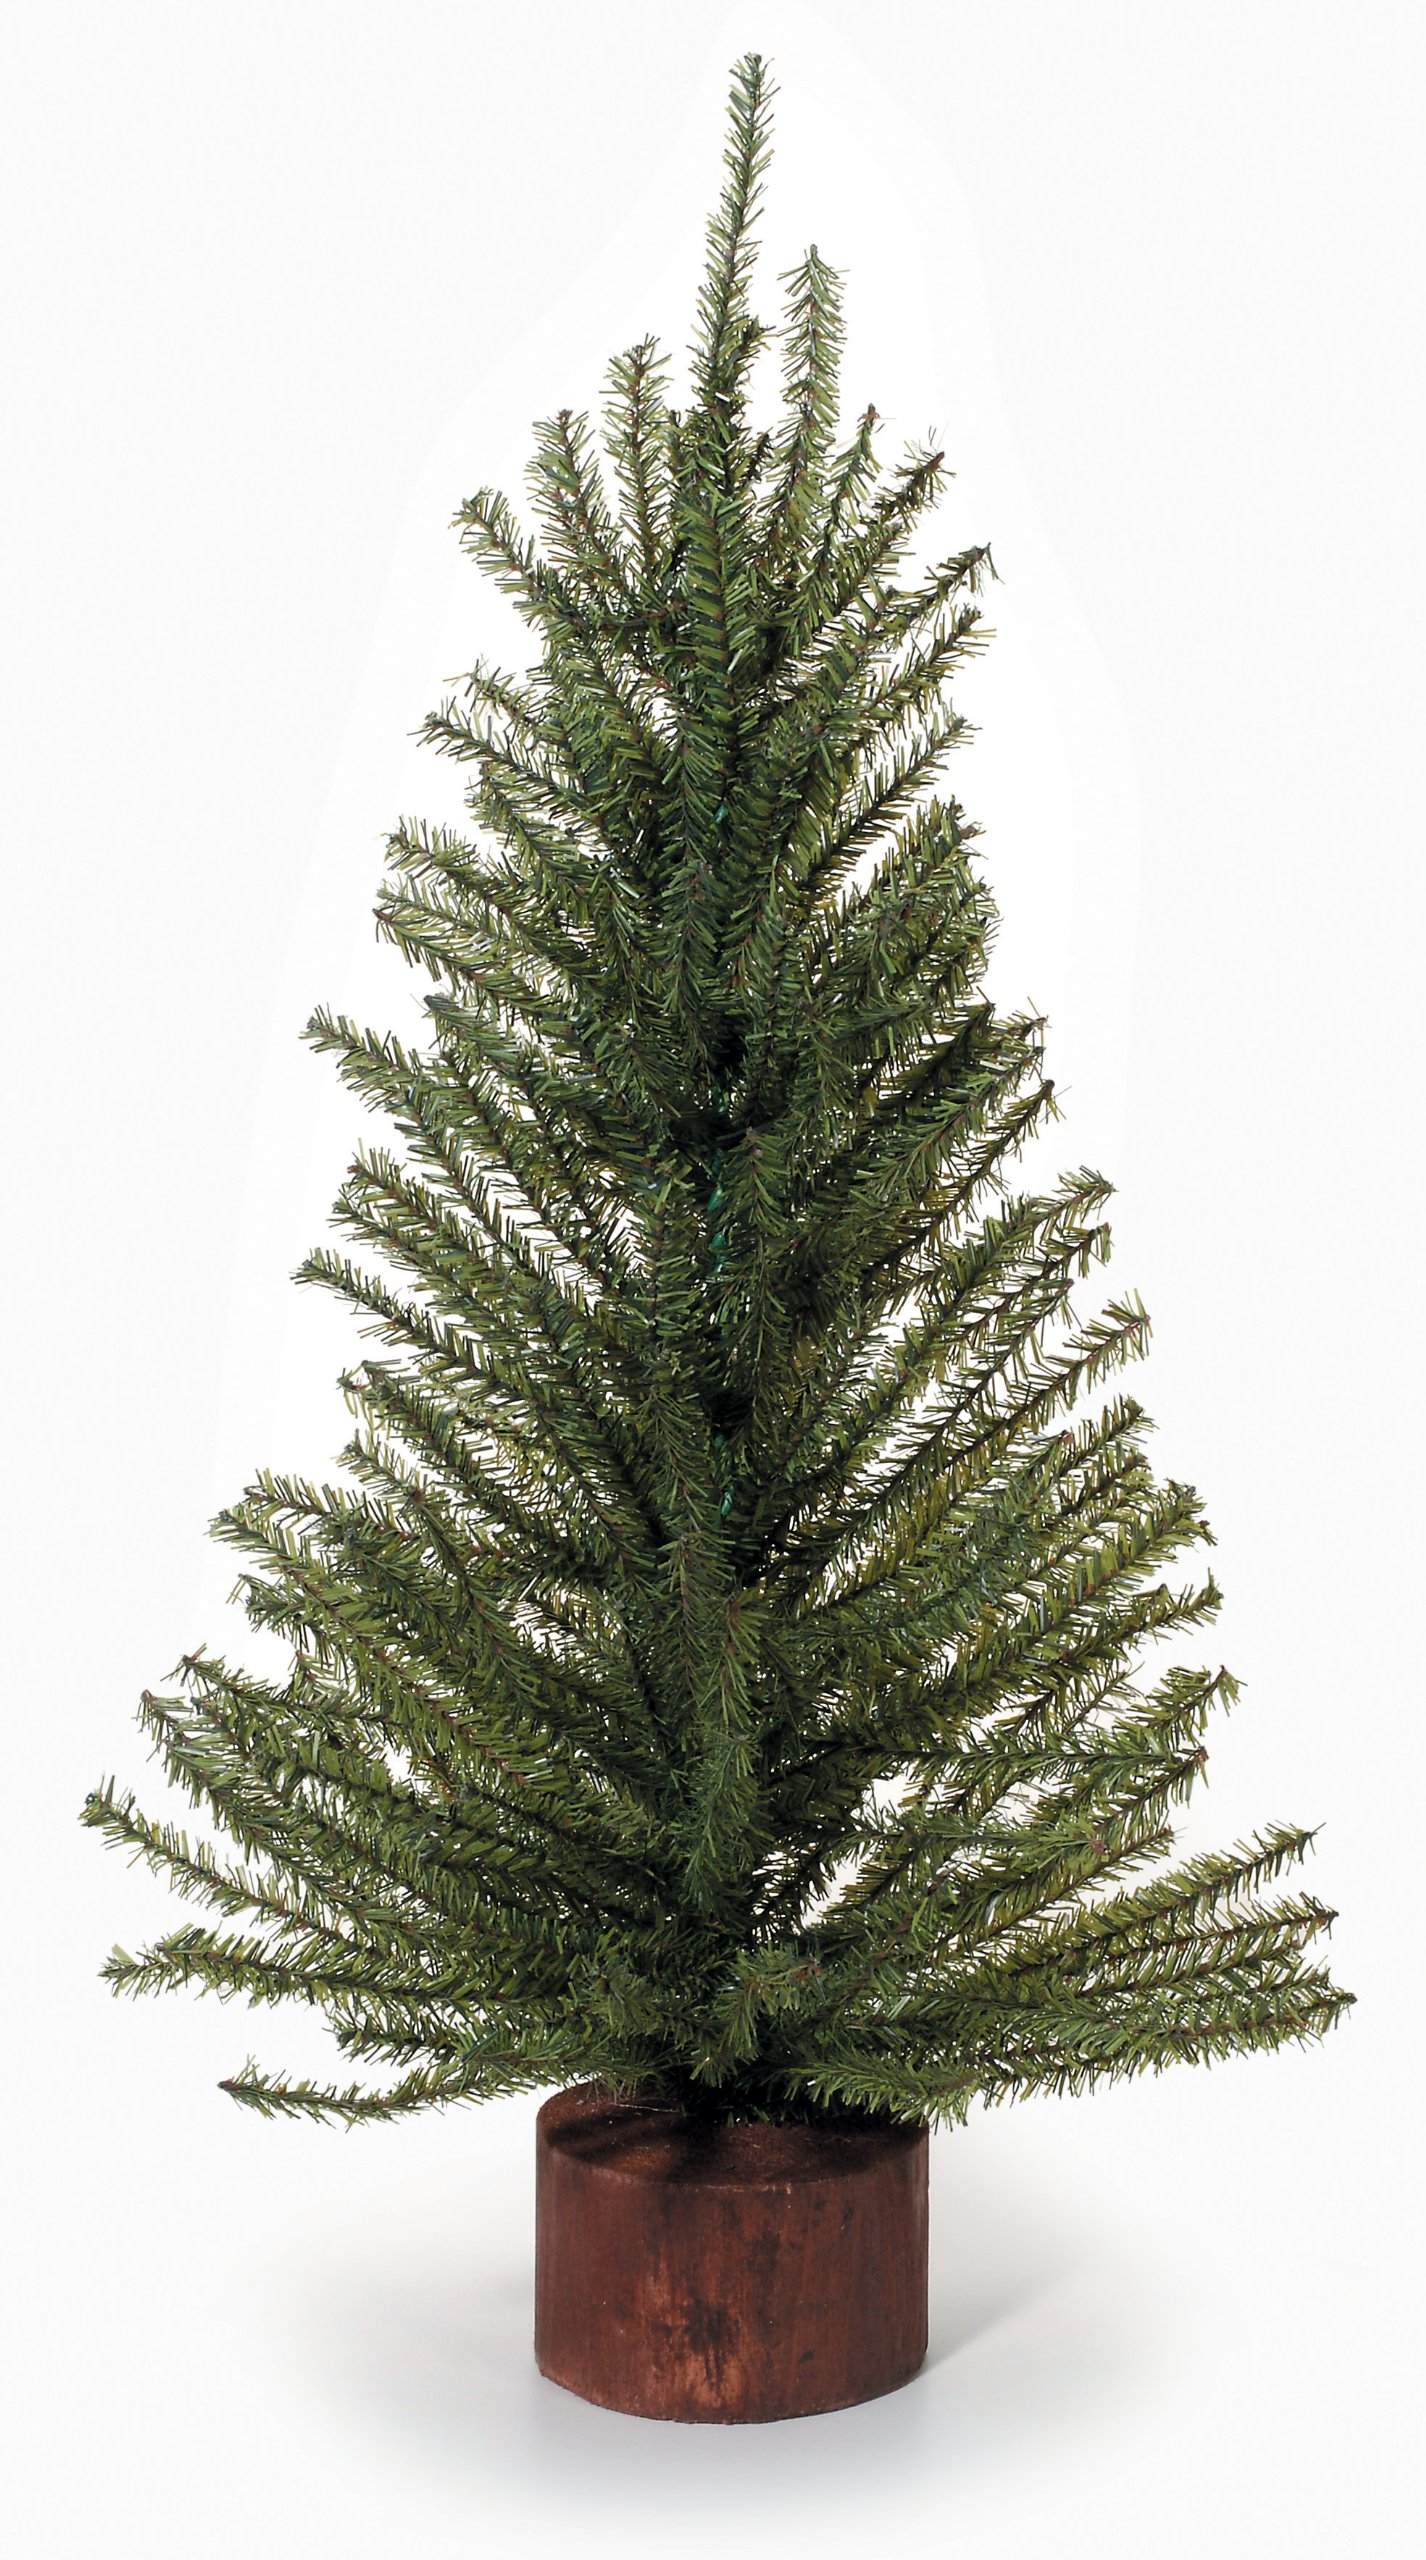 Mixed Pine Tree with Wood Base - 216 Tips - 24 inches (1 Tree)